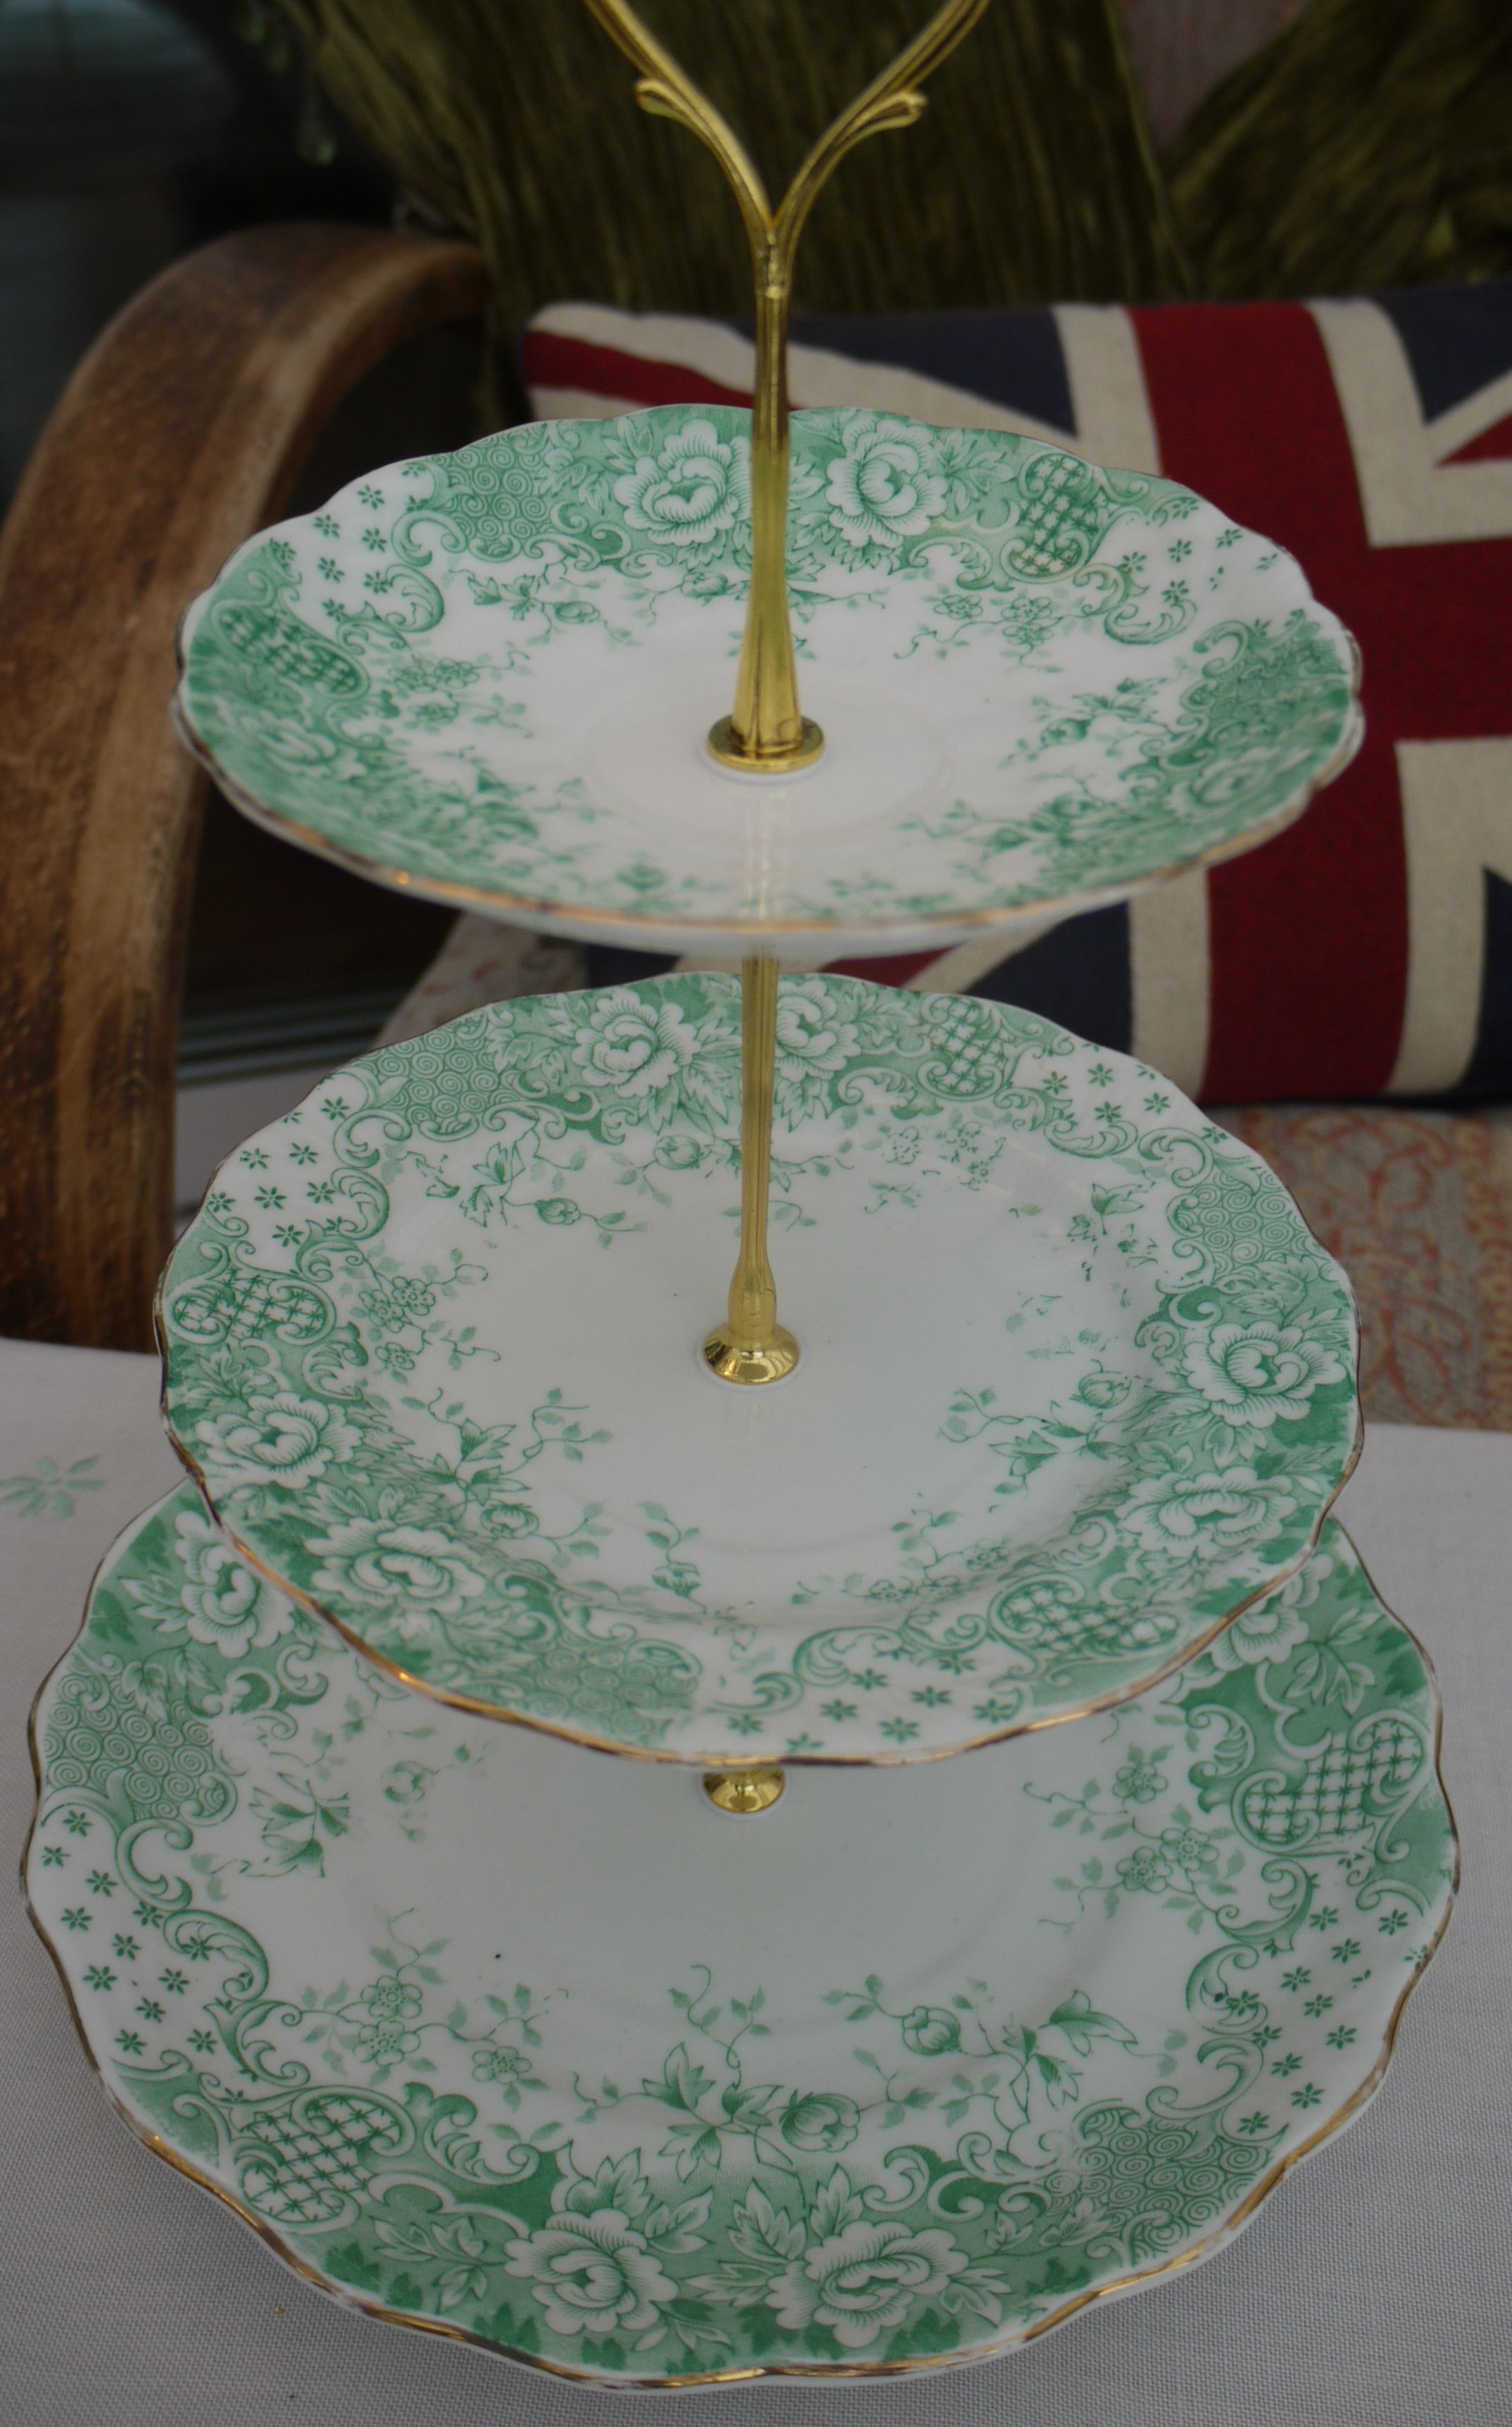 3 tier cake stand in green and white with images